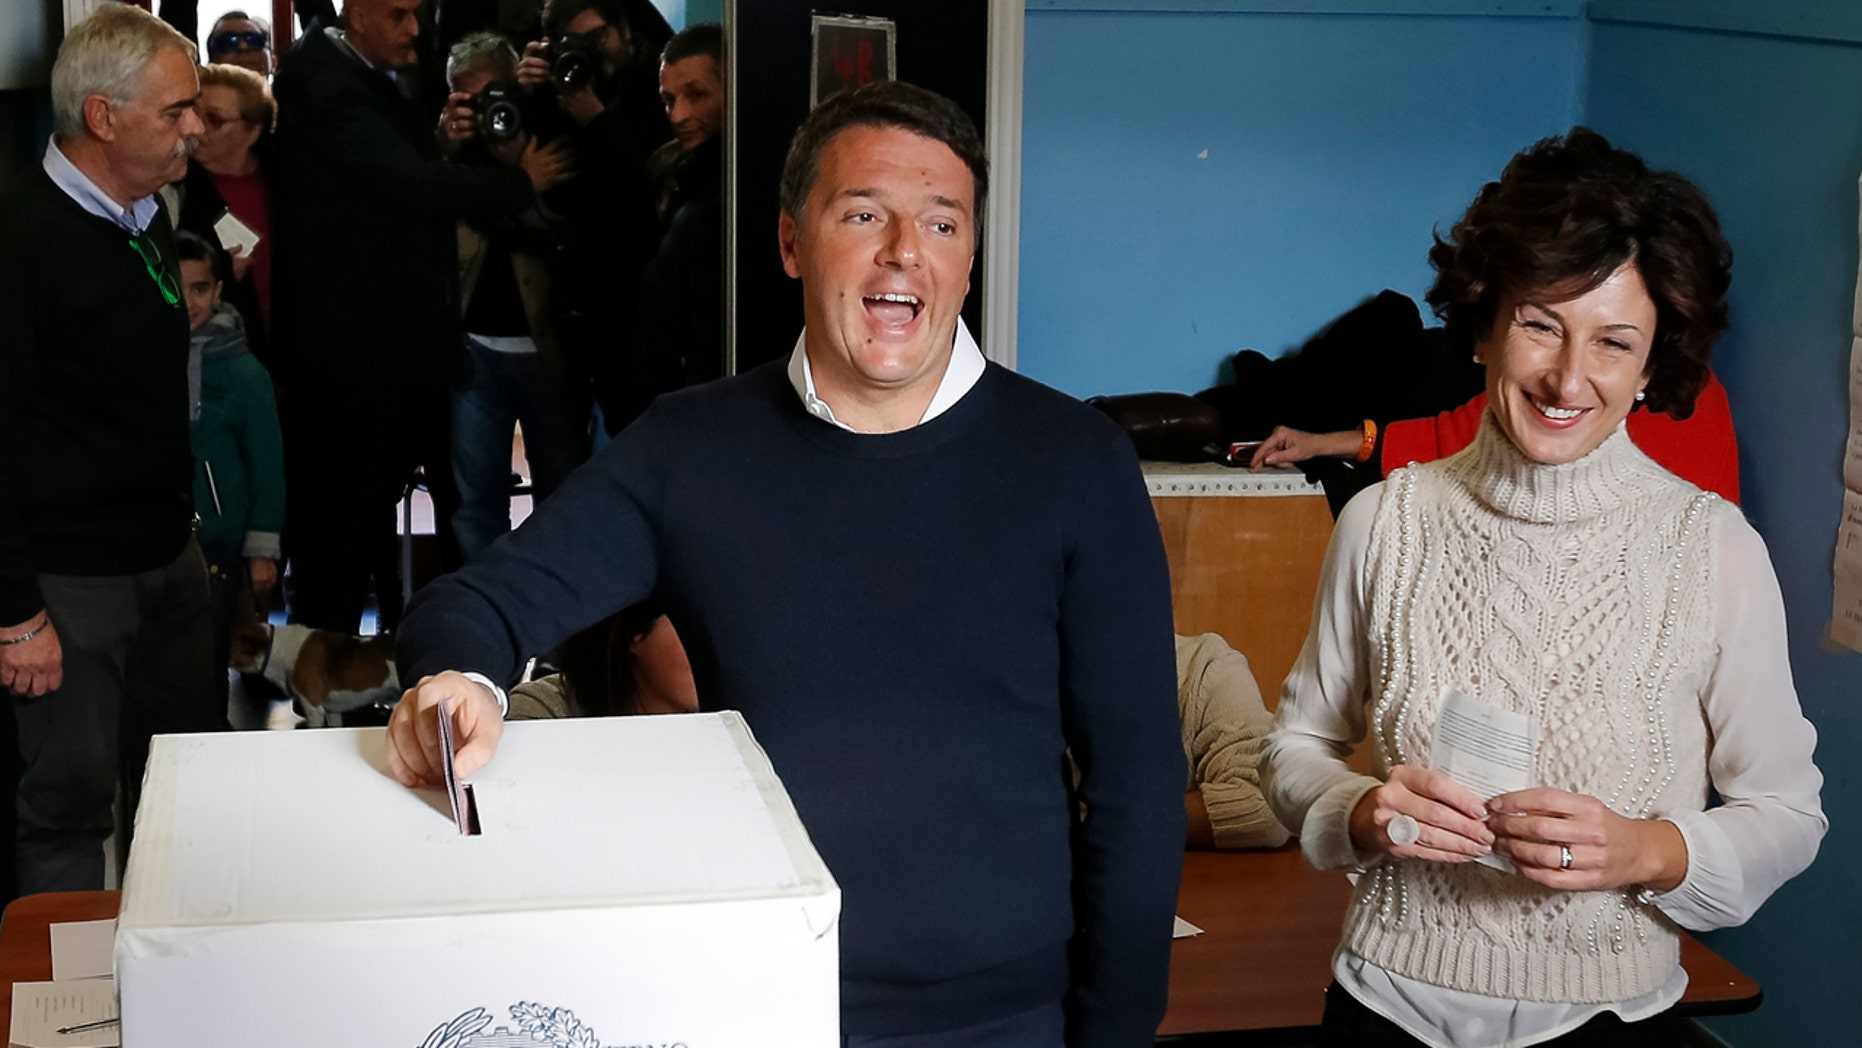 Dec. 4, 2016: Italian Premier Matteo Renzi is flanked by his wife Agnese as he casts his ballot at a polling station in Pontassieve, Italy.